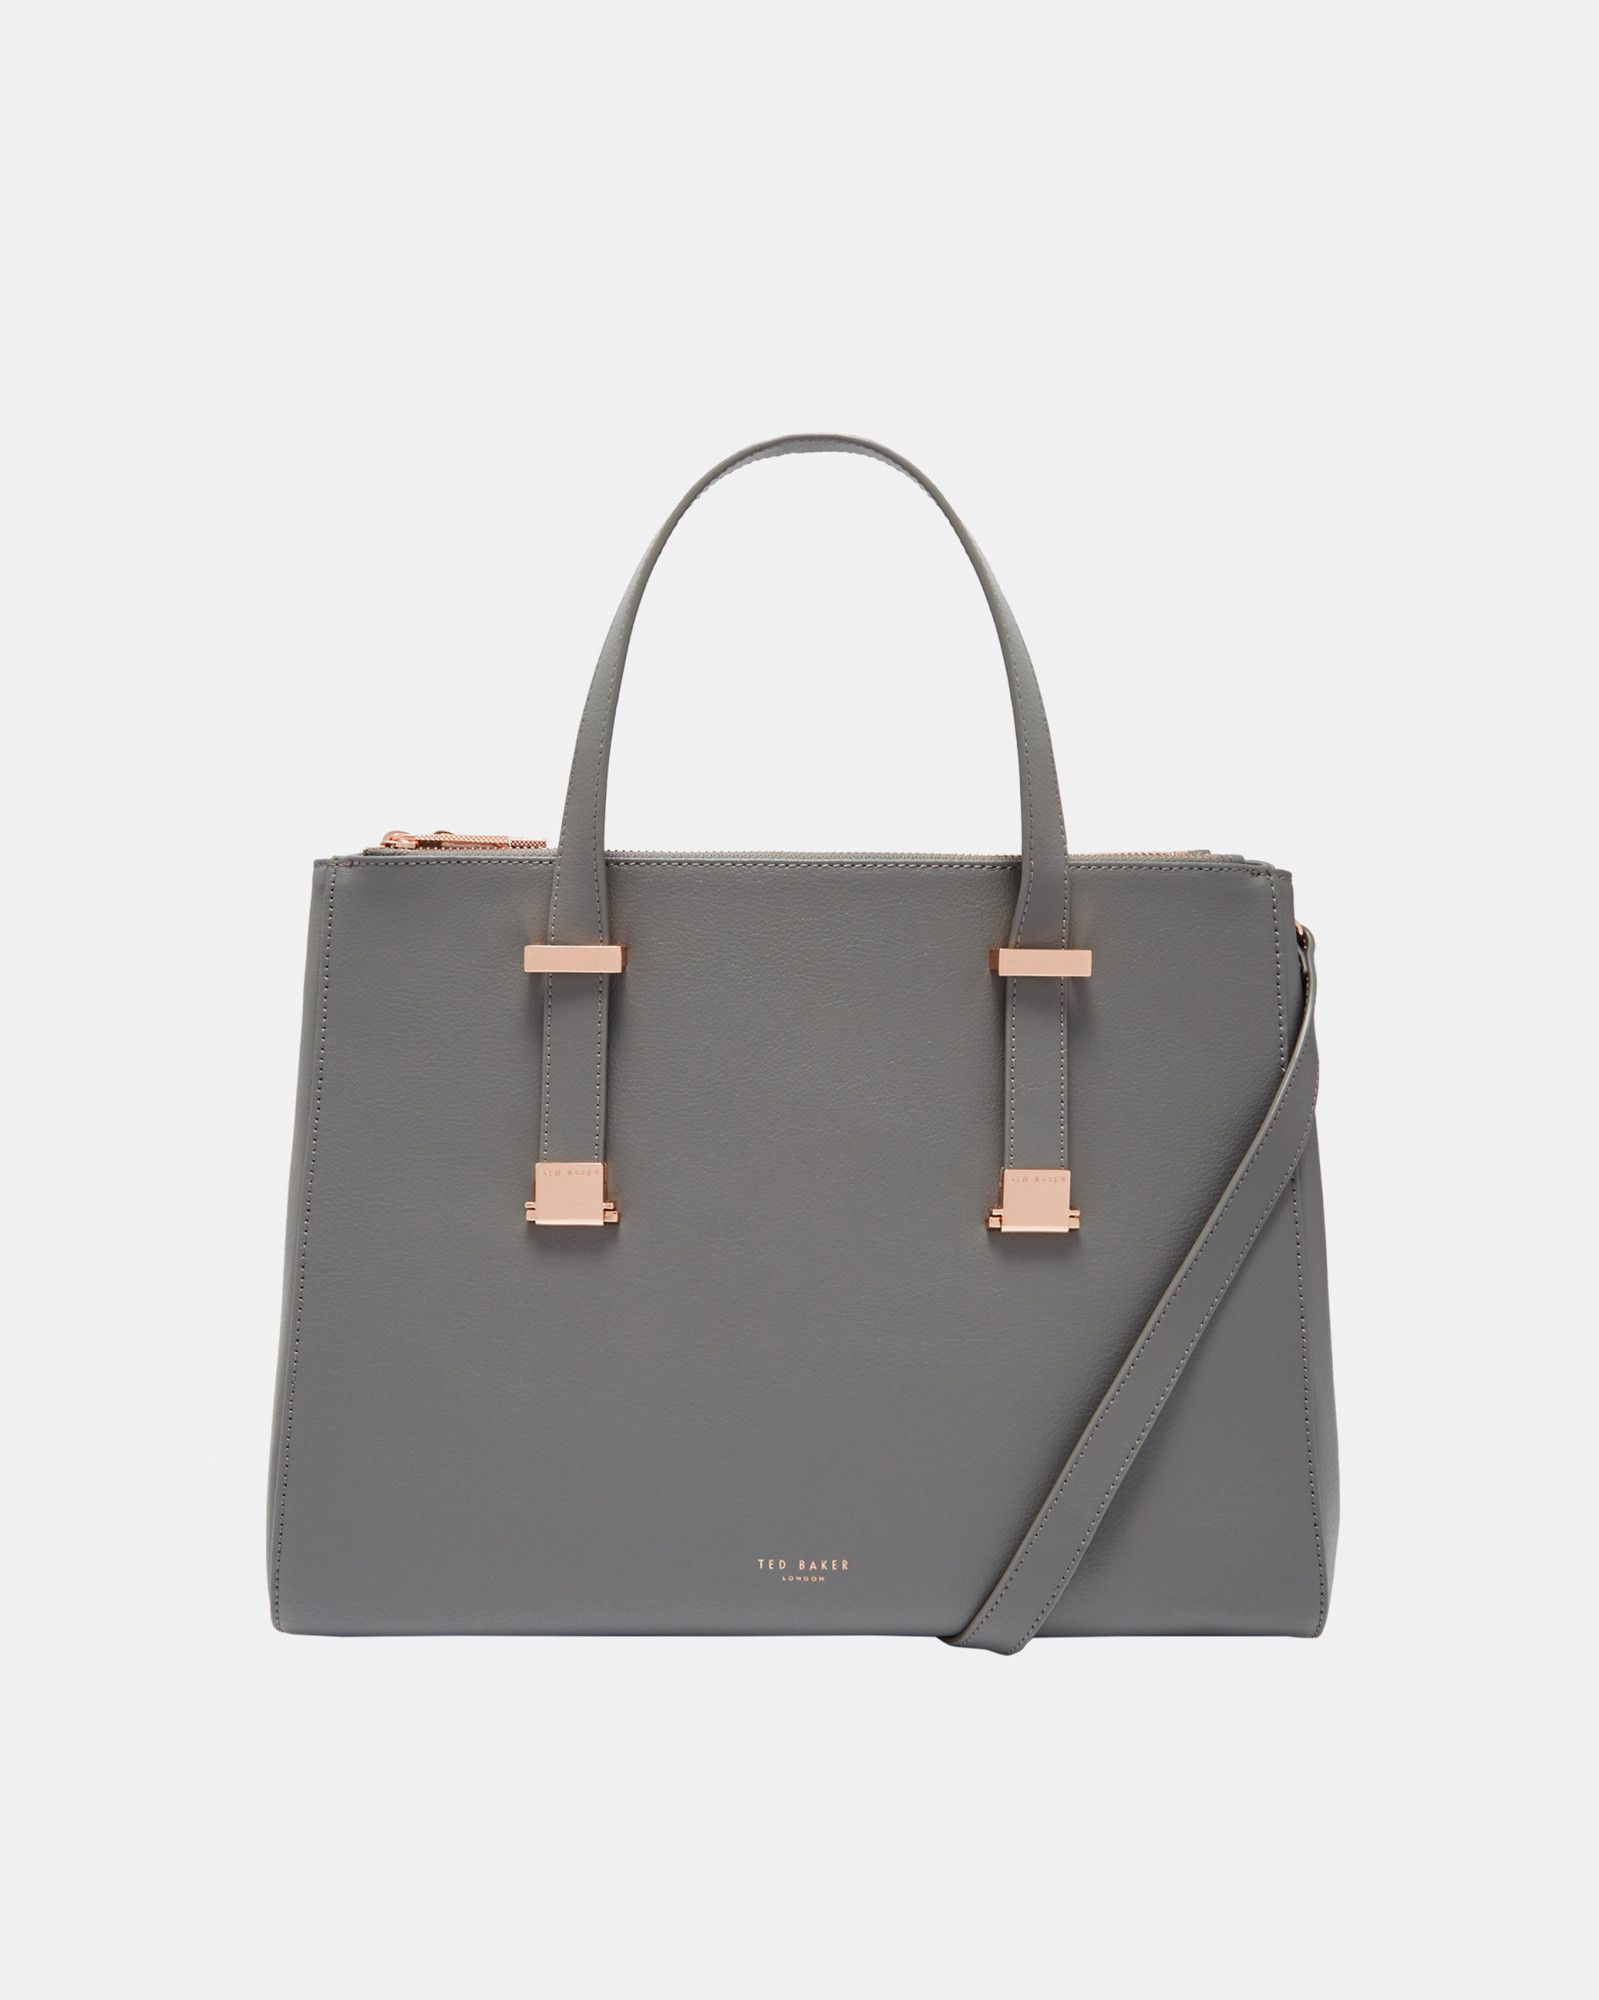 bb34b2157a ALUNAA Large leather pebble grain tote bag #TedToToe | My Style in ...